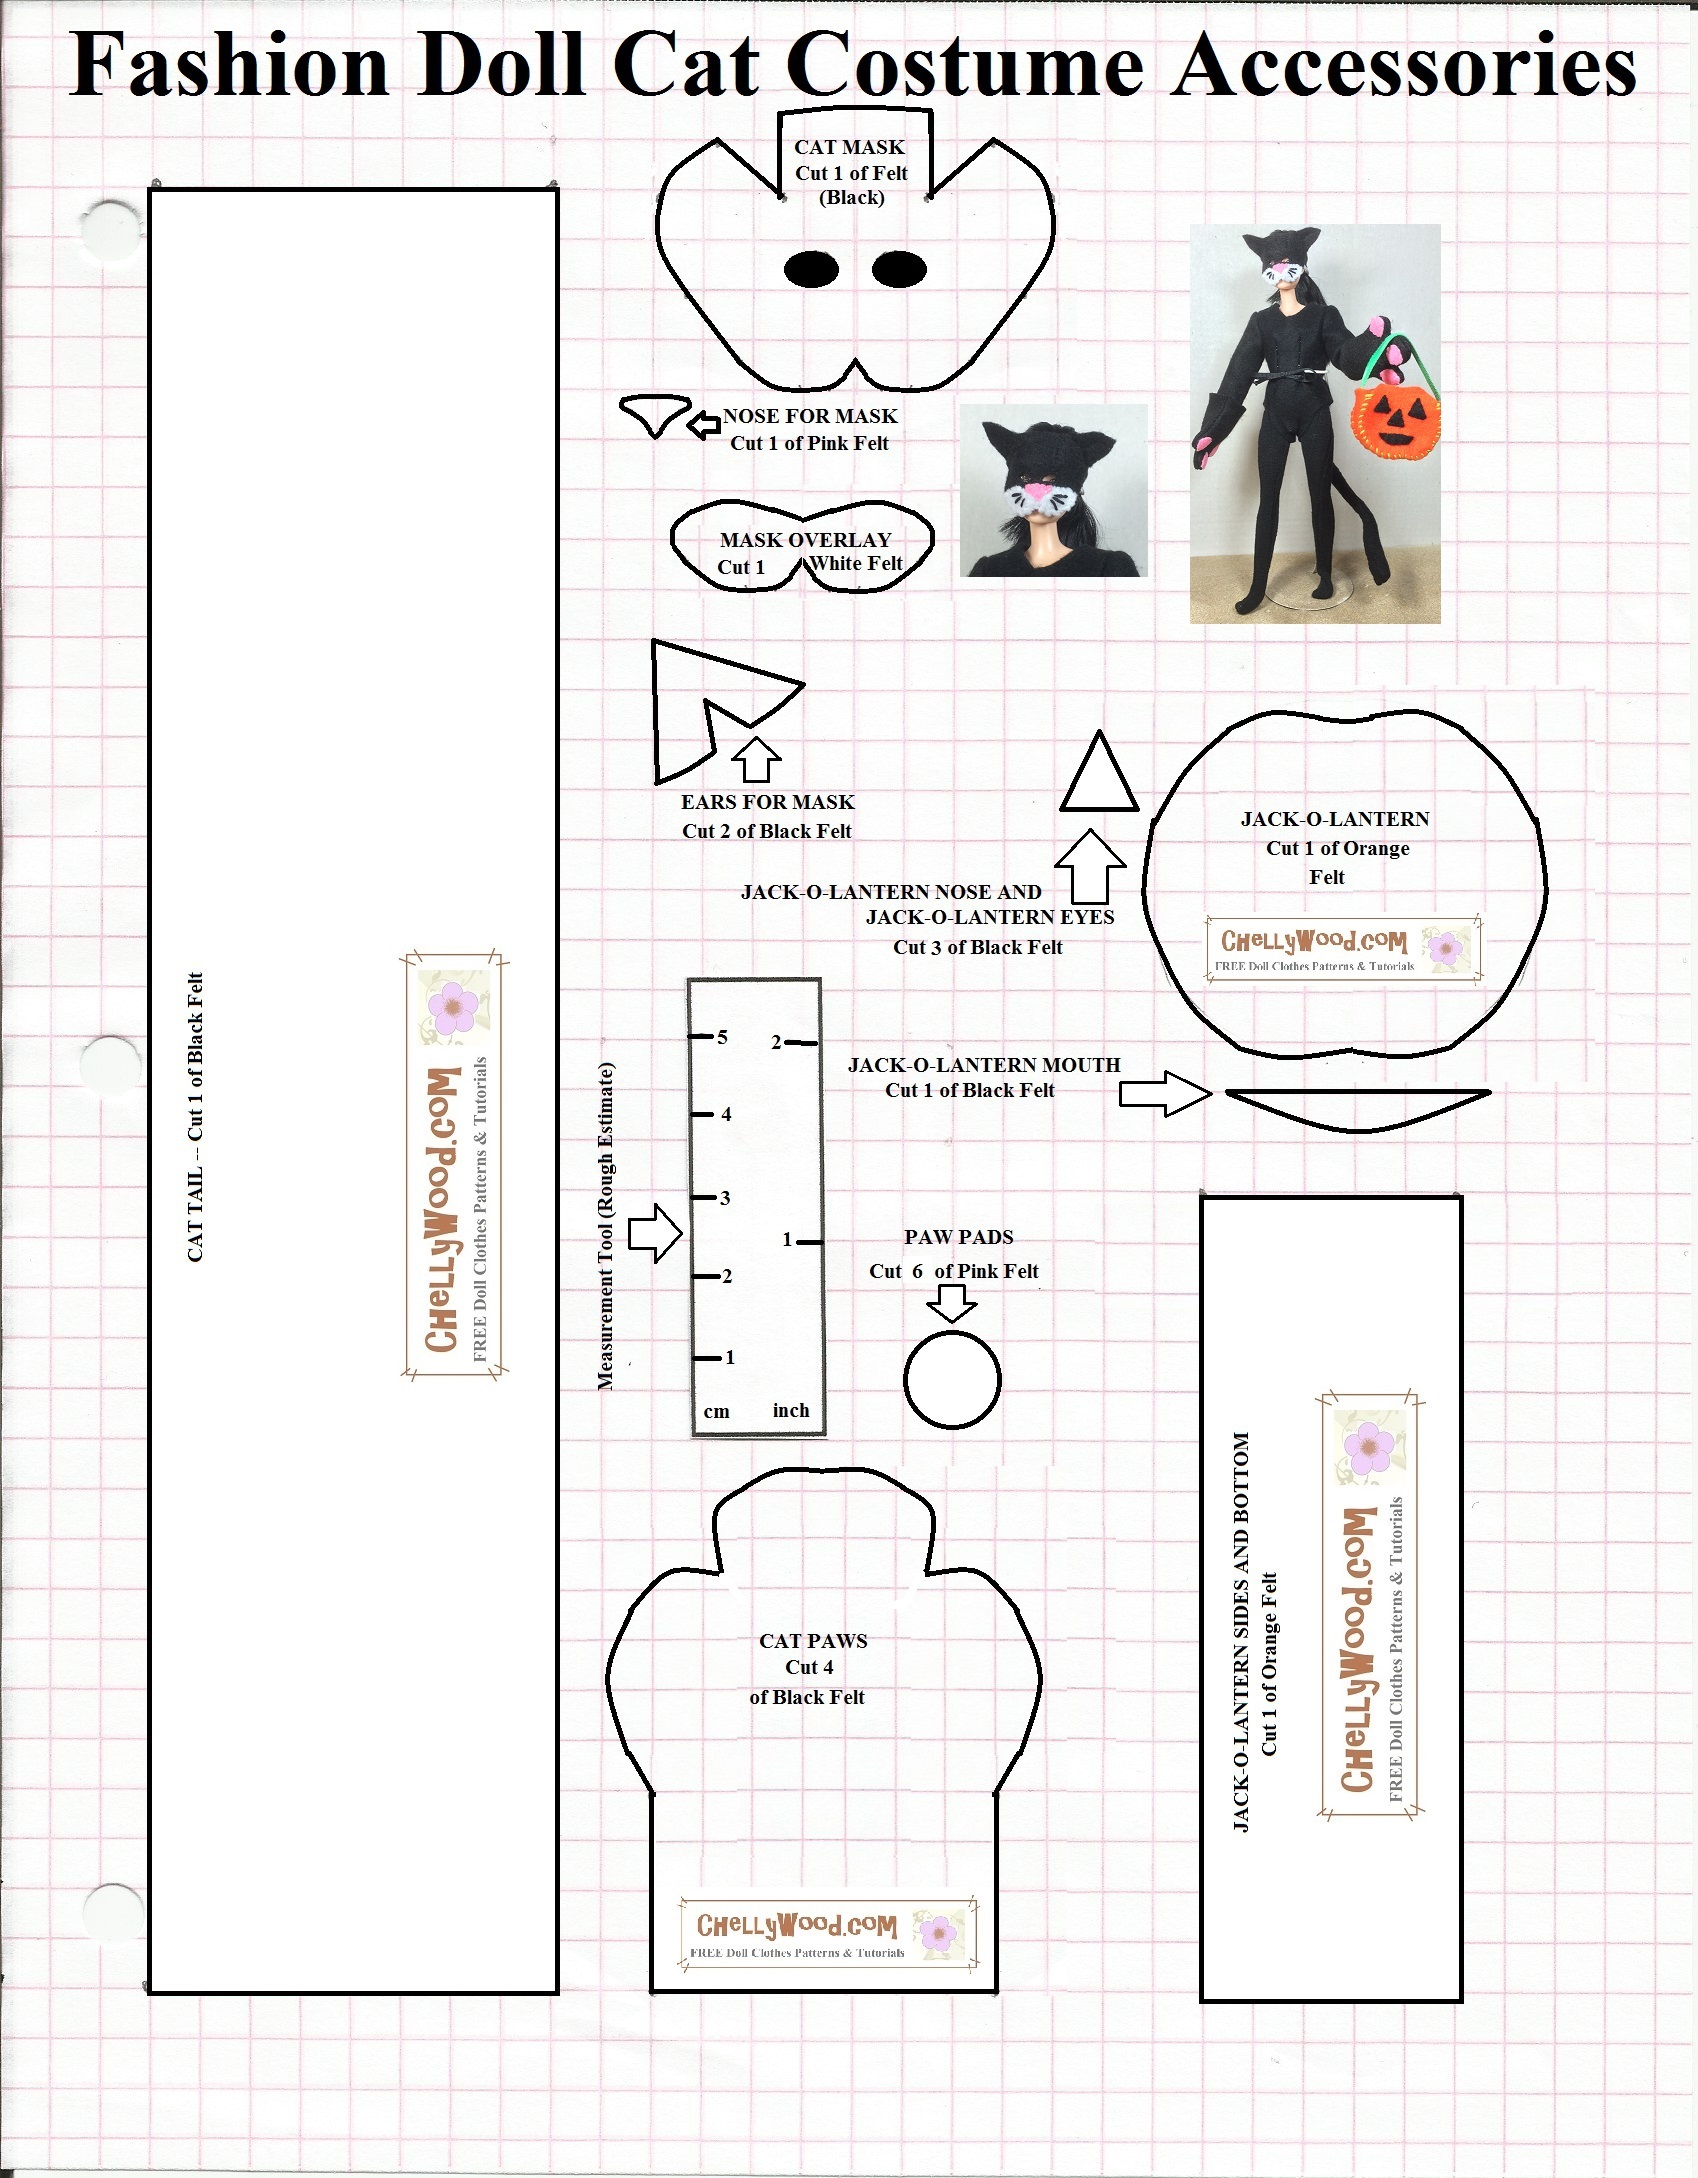 Free sewing patterns for fashion dolls -  My Fashion Doll Halloween Costume Set I Ve Been Getting Requests To Include A Measurement Gauge Therefore You Ll Find This Pattern Along With Some Of